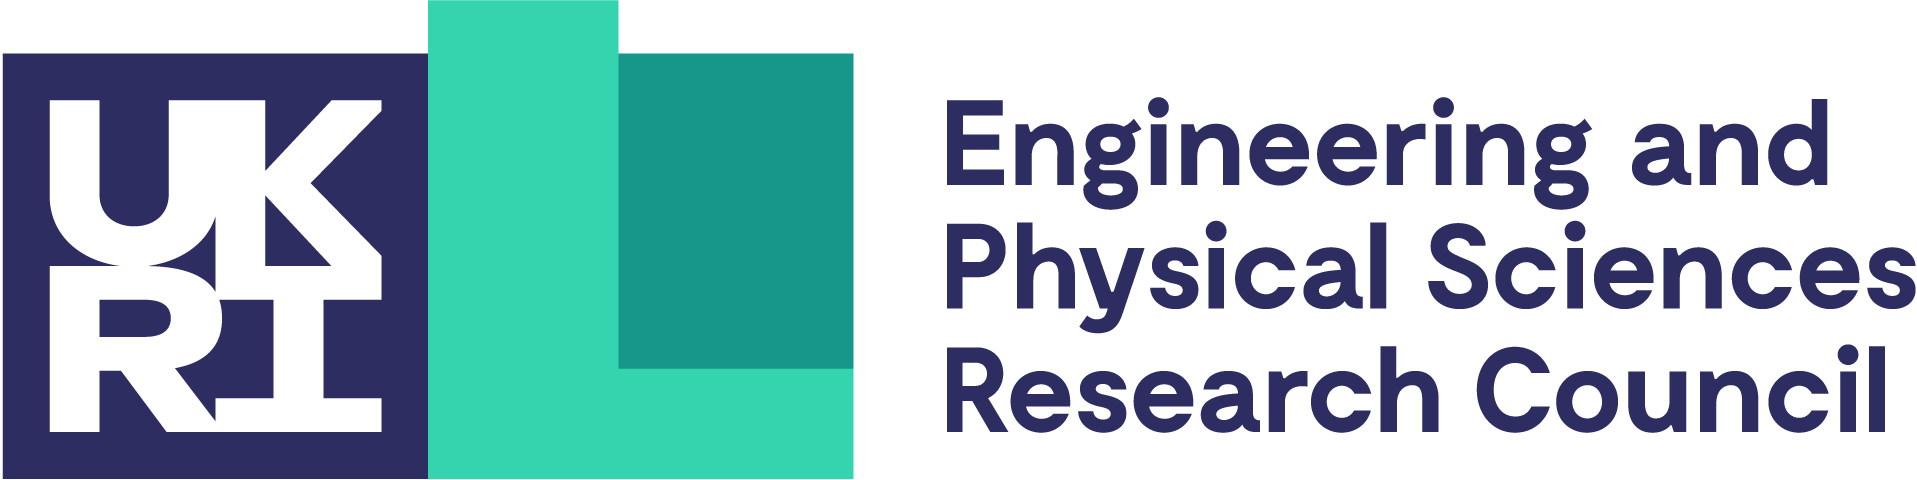 UKCP is funded by EPSRC